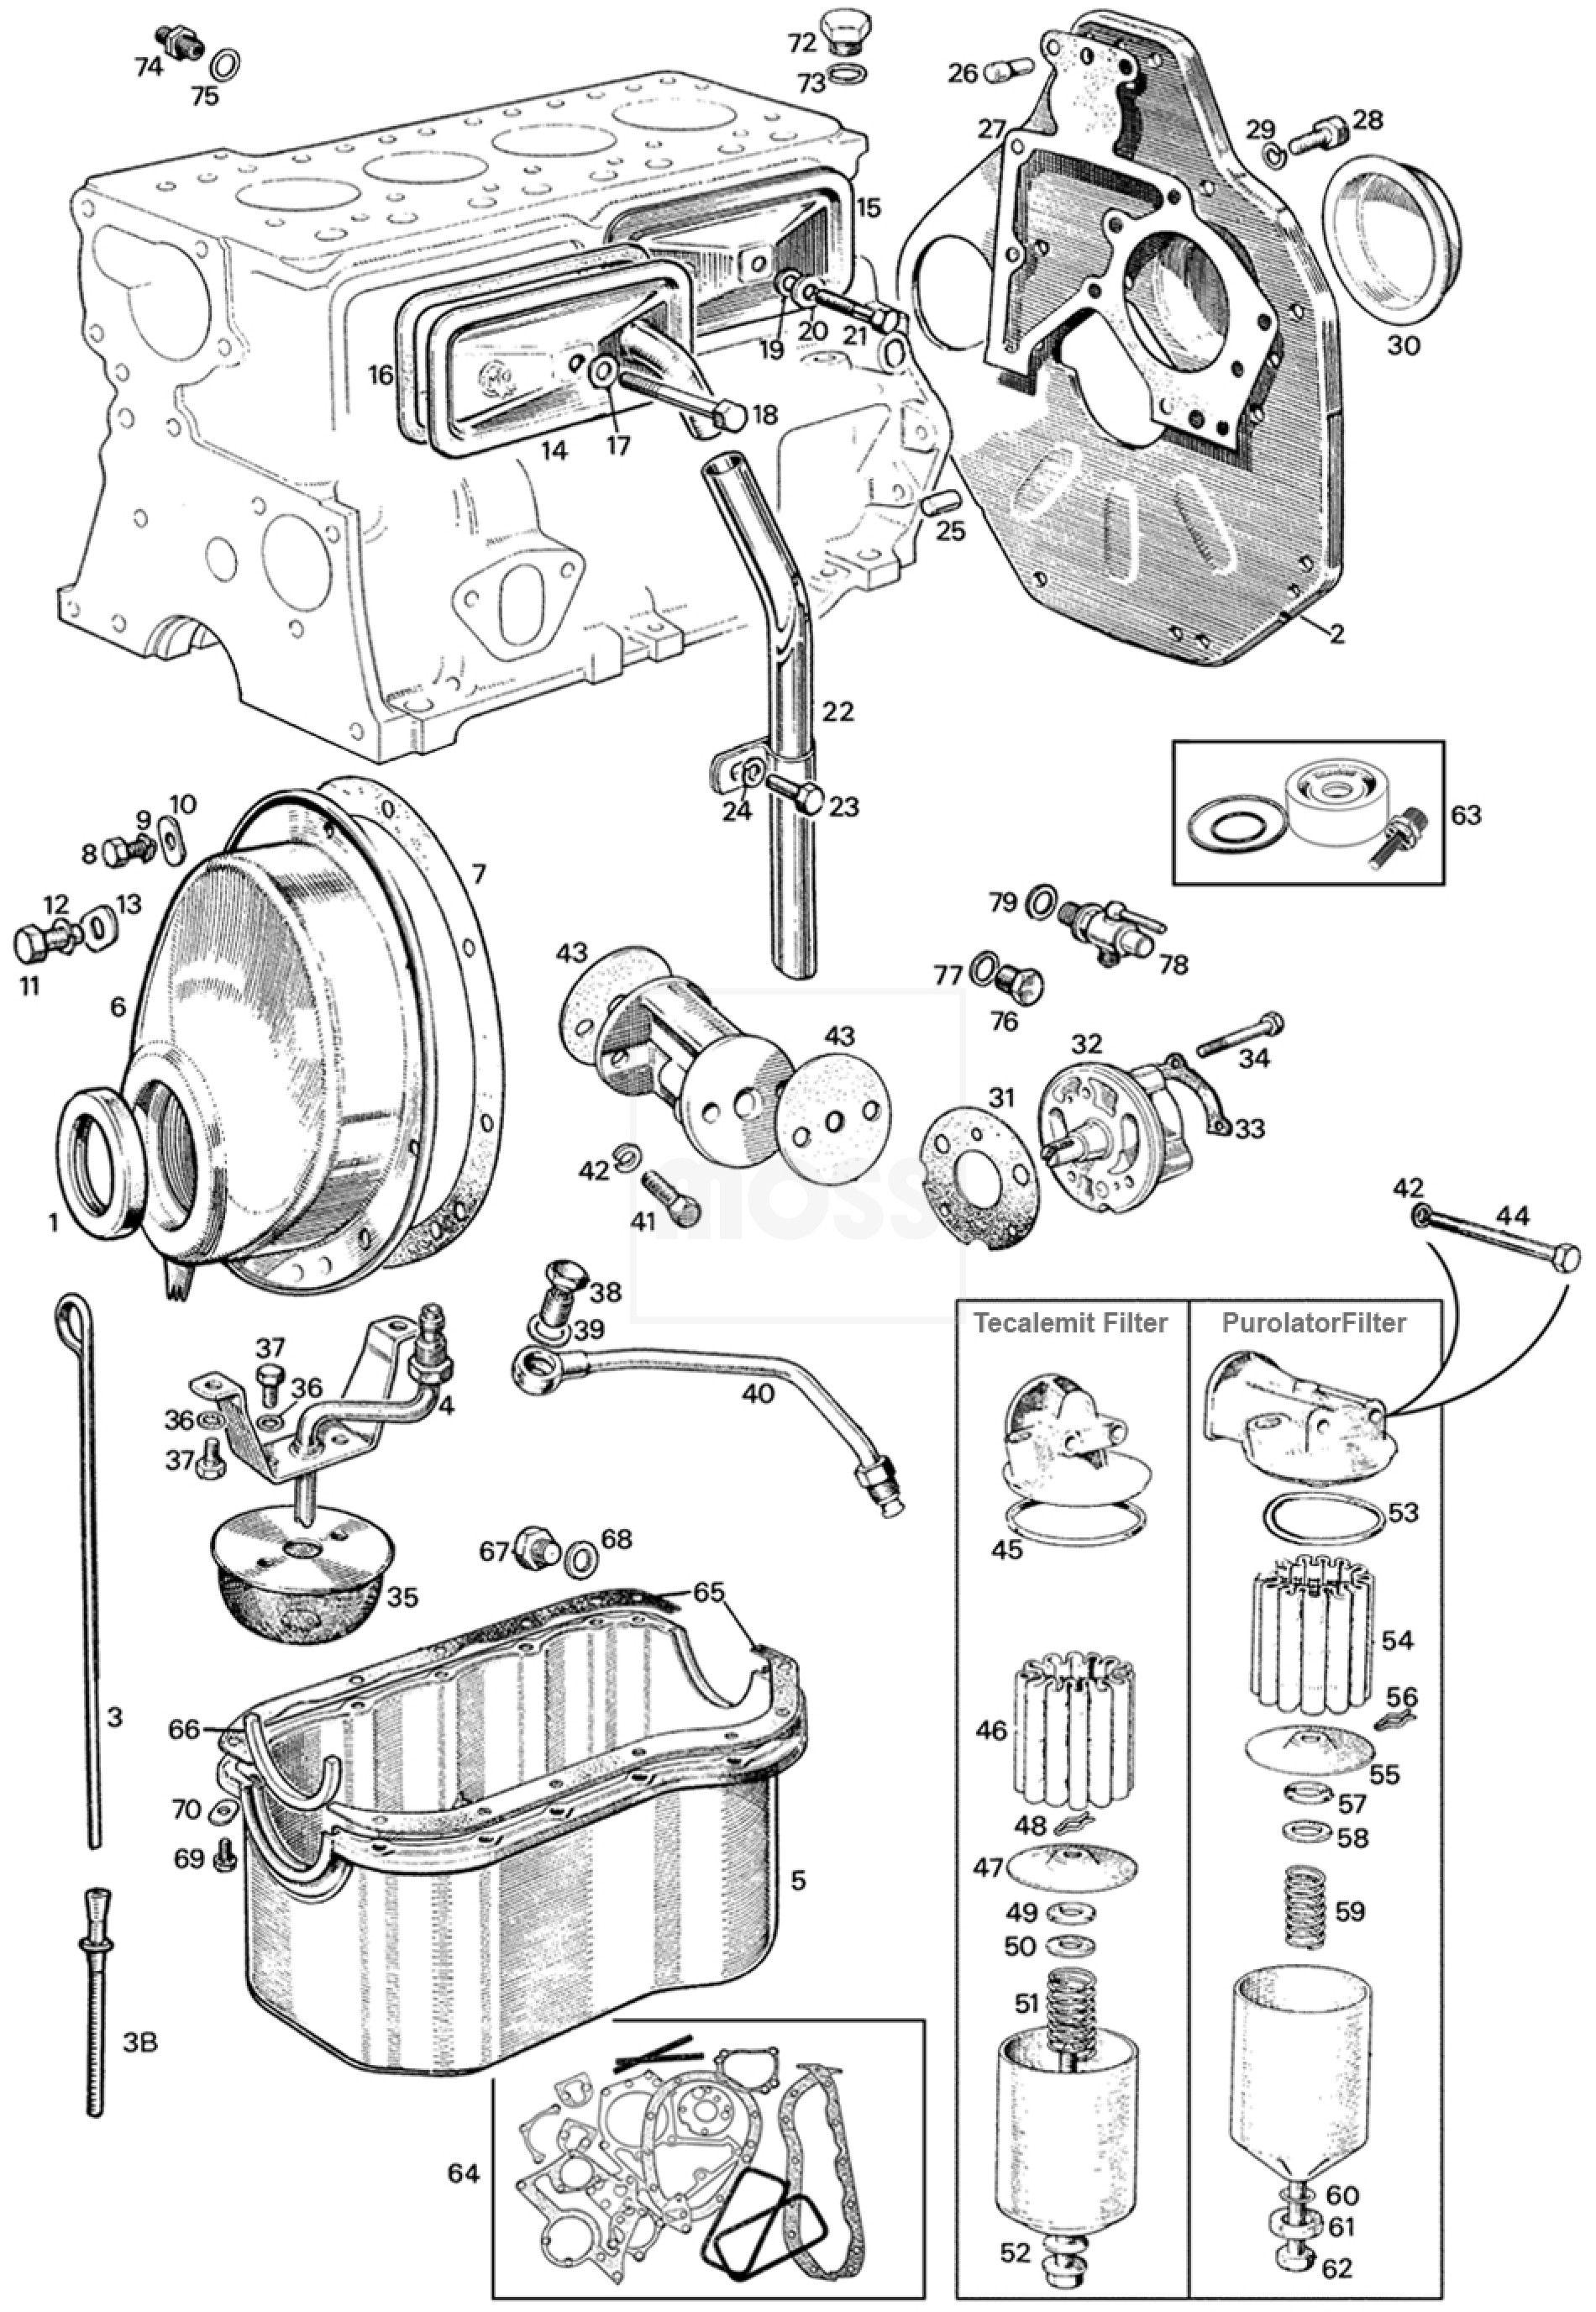 948 Engine Diagram